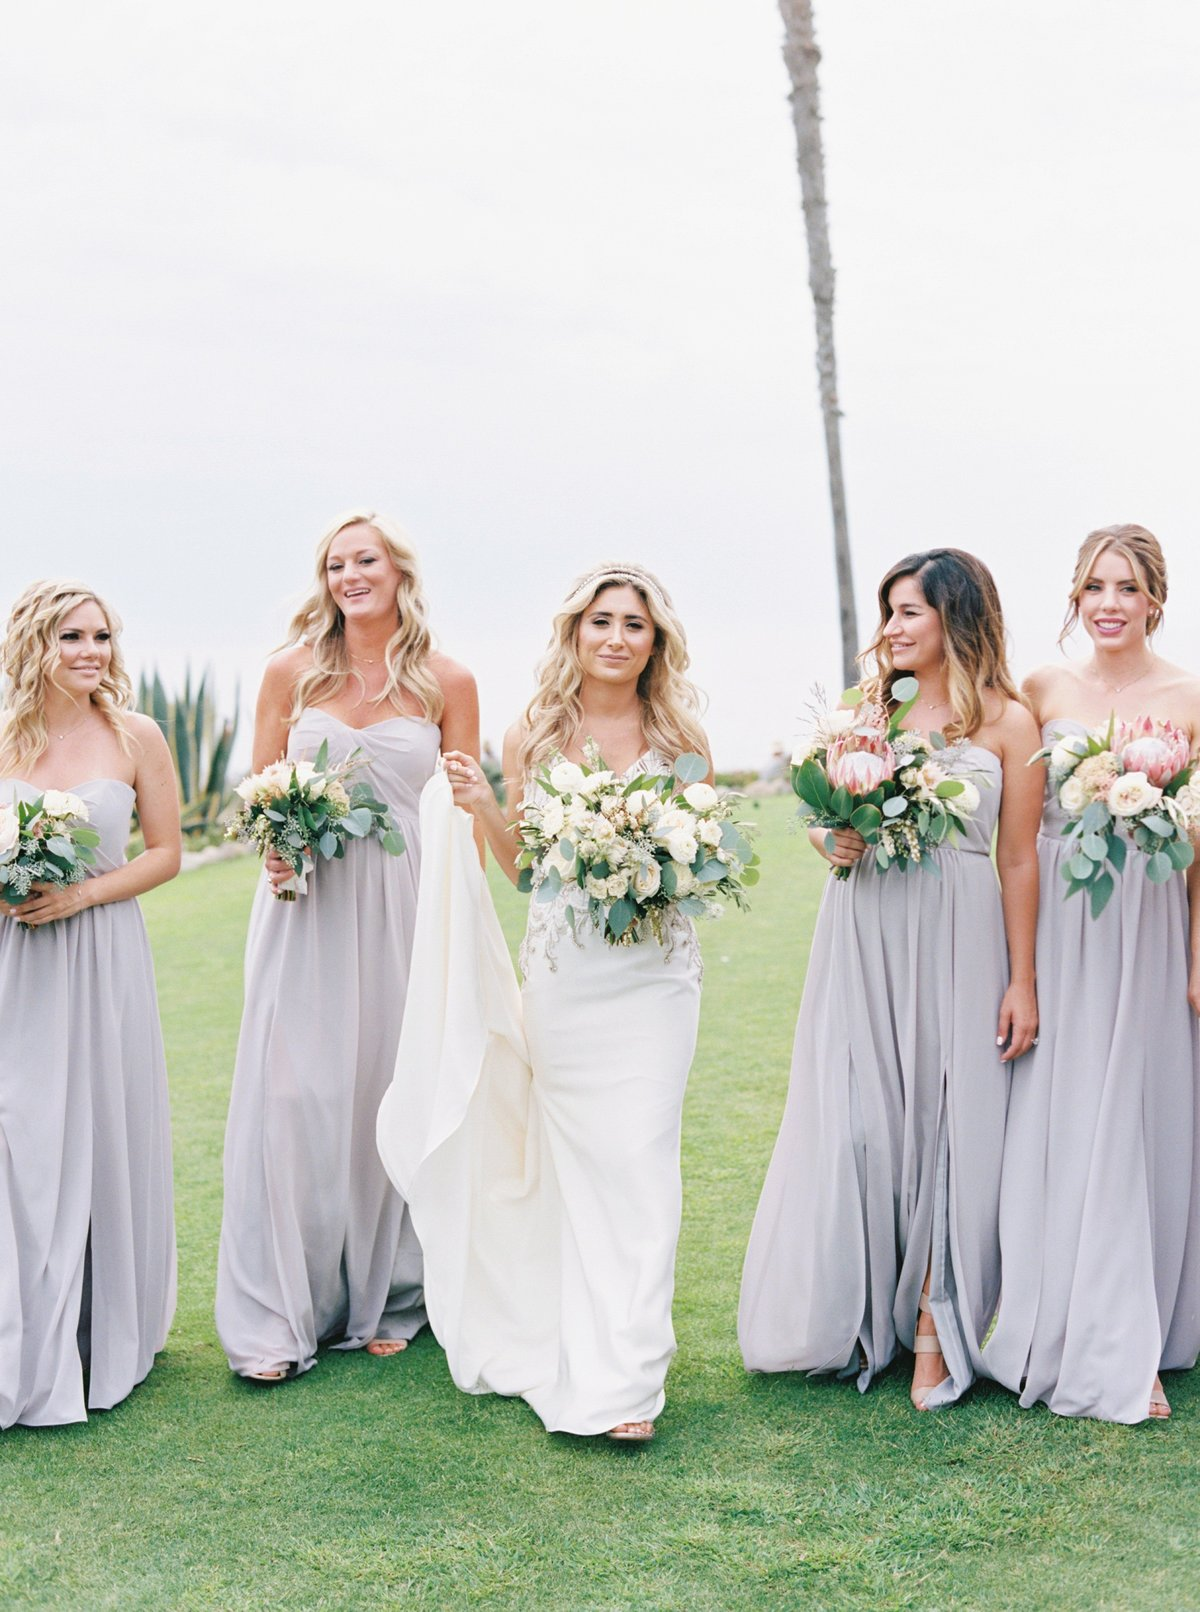 nicoleclareyphotography_evan+jeff_laguna beach_wedding_0002